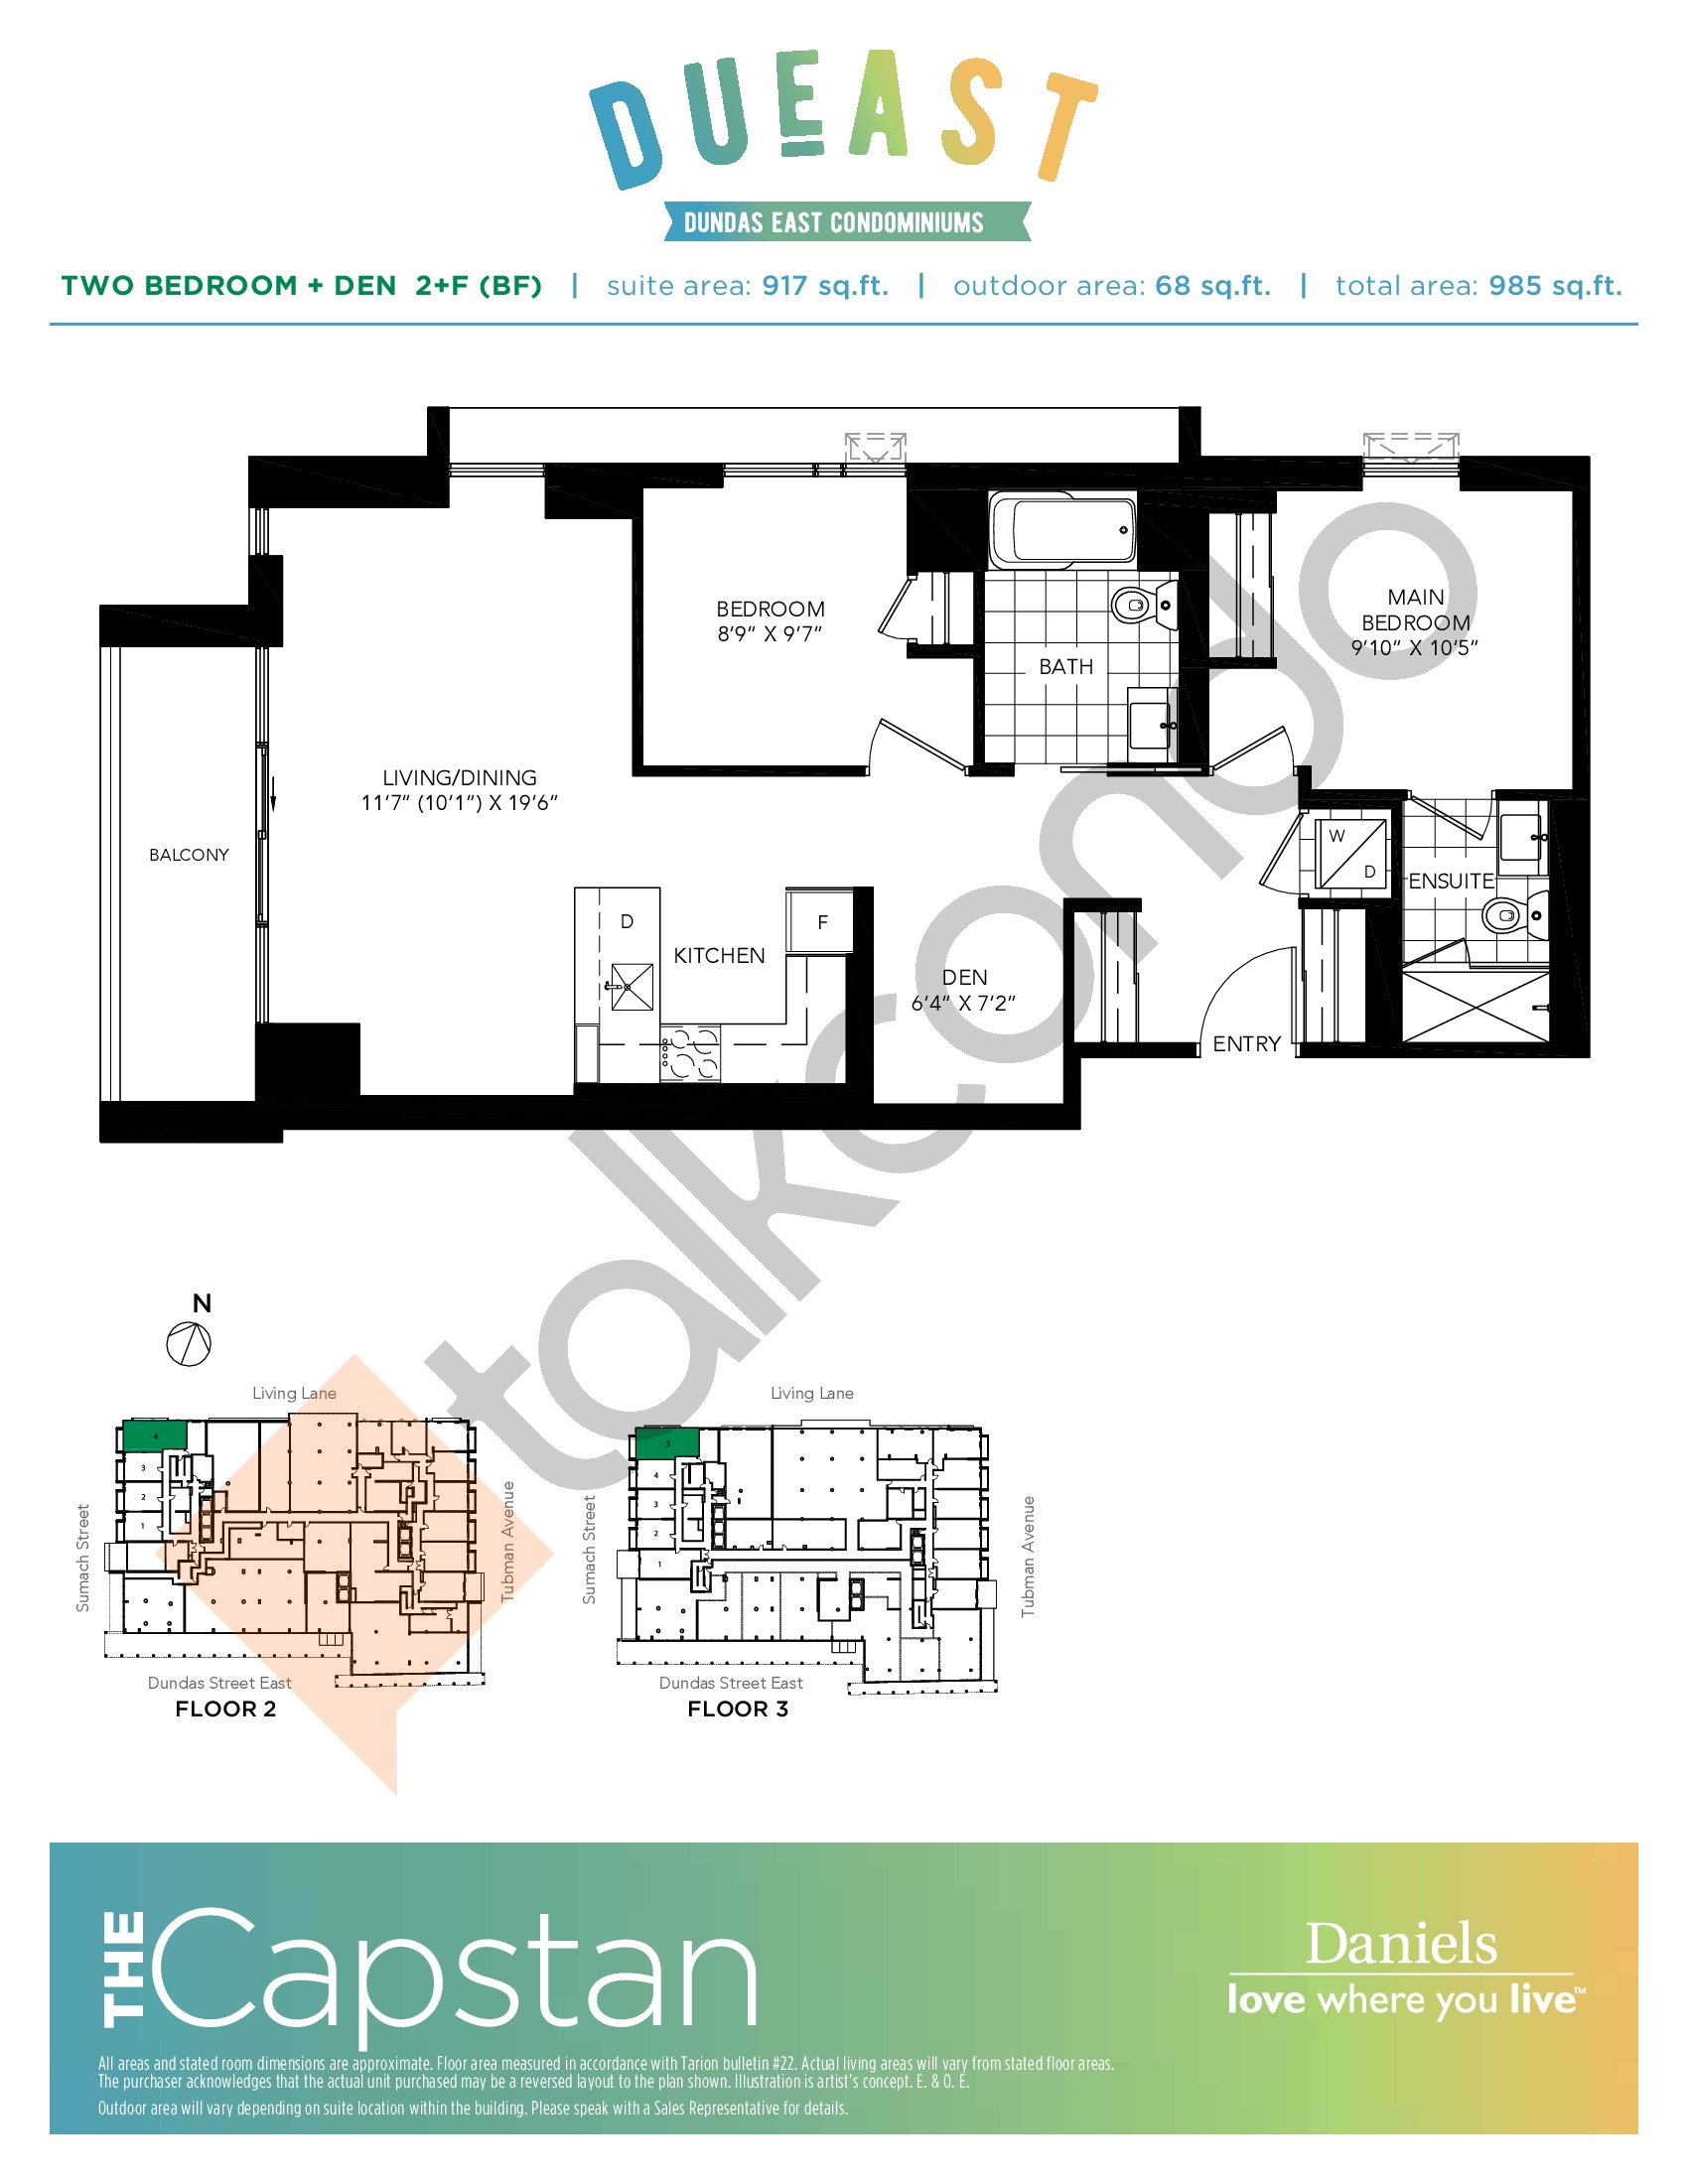 The Capstan 2+F (BF) Floor Plan at DuEast Condos - 917 sq.ft